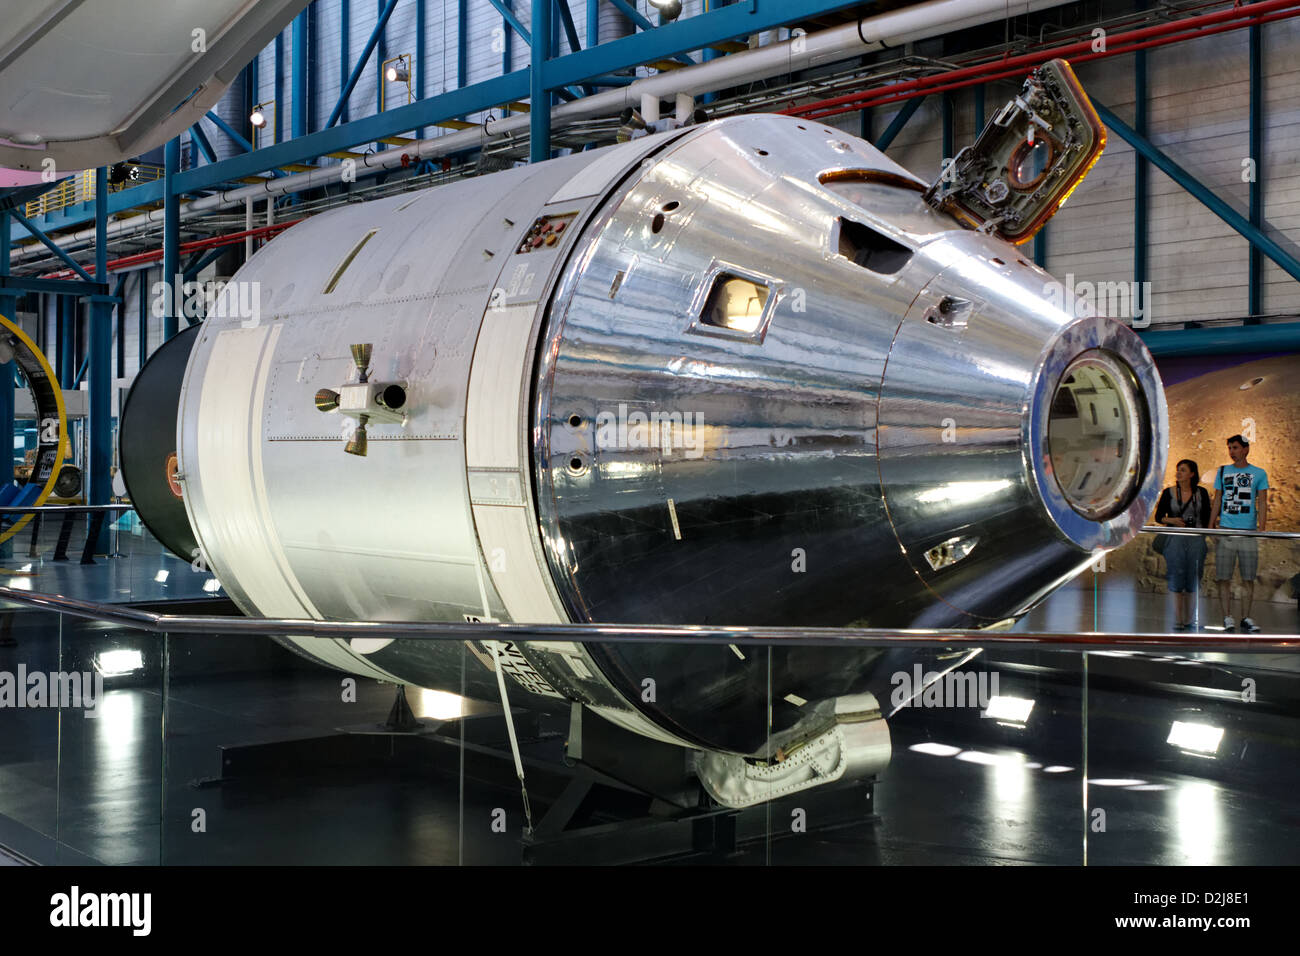 Apollo Spacecraft, Command and Service Modules - Stock Image